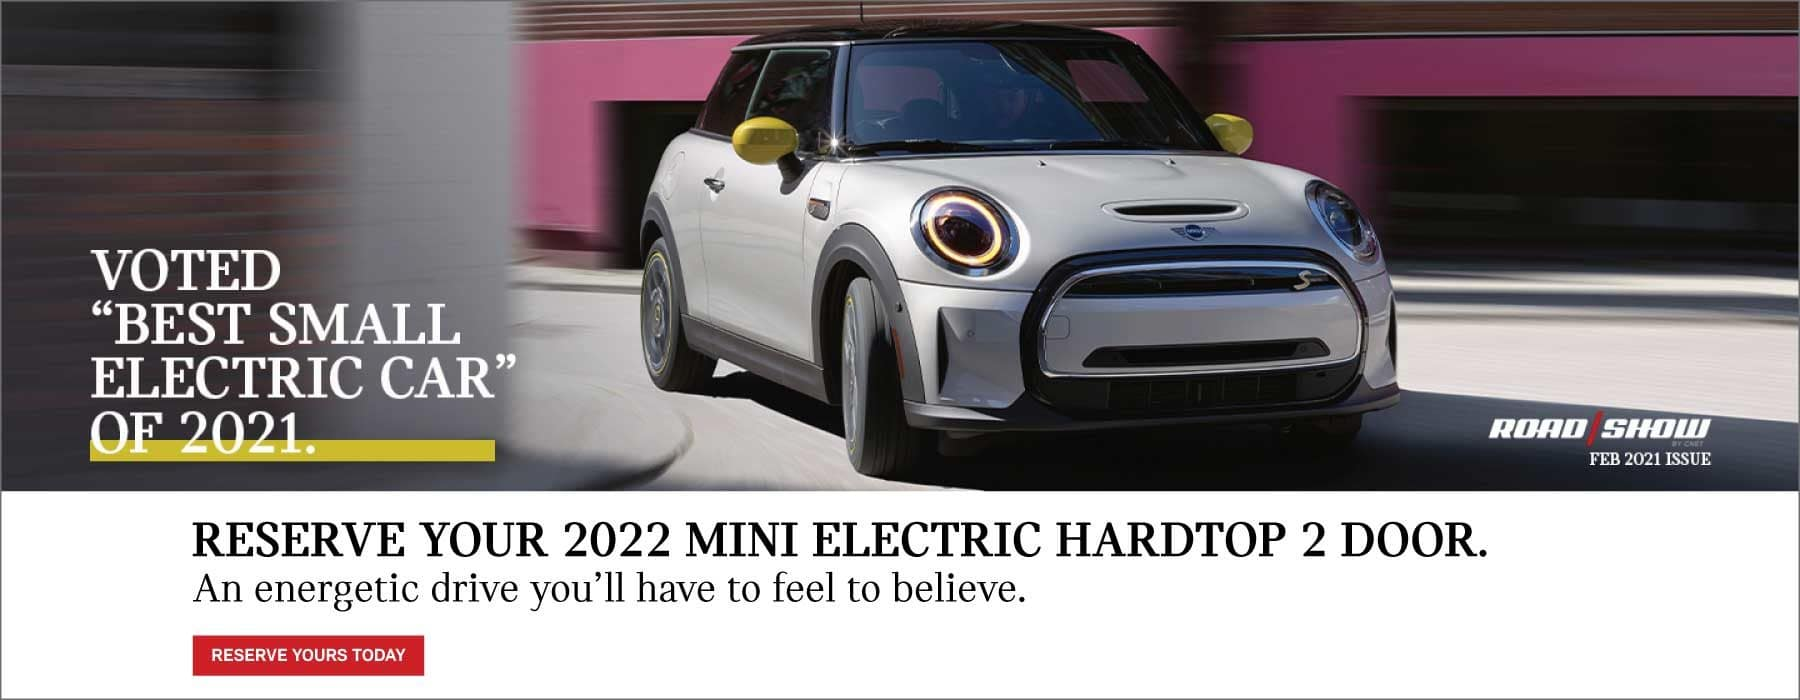 Reserve your 2022 MINI Electric Hardtop 2 Door. An energetic drive you'll have to feel to believe. Click to reserve yours today. Voted